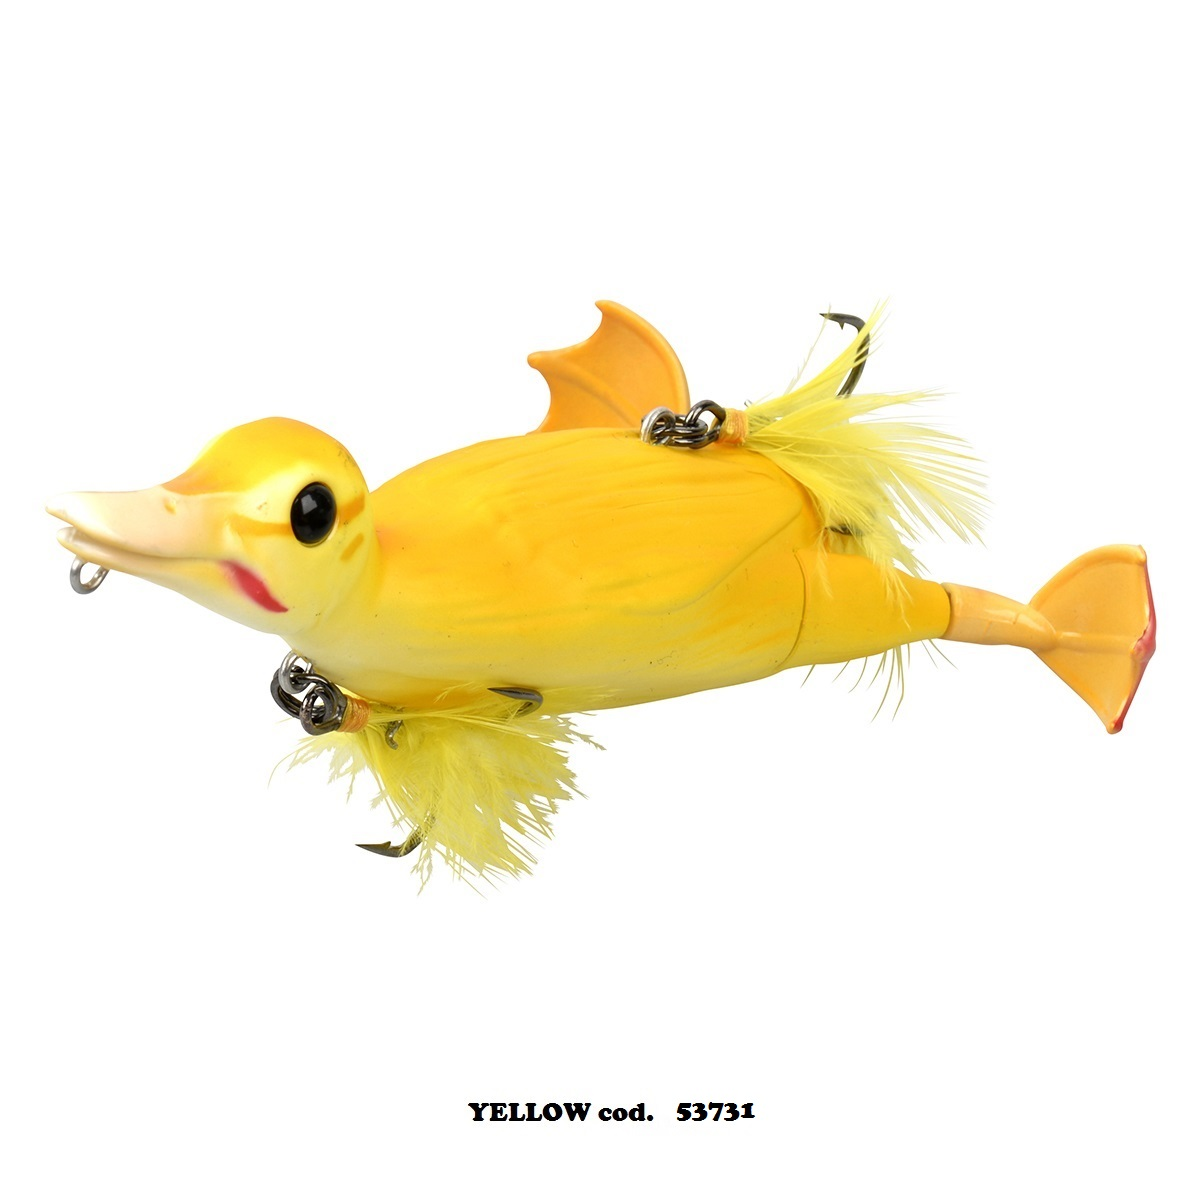 Esca Savage Gear 3D Suicide Duck